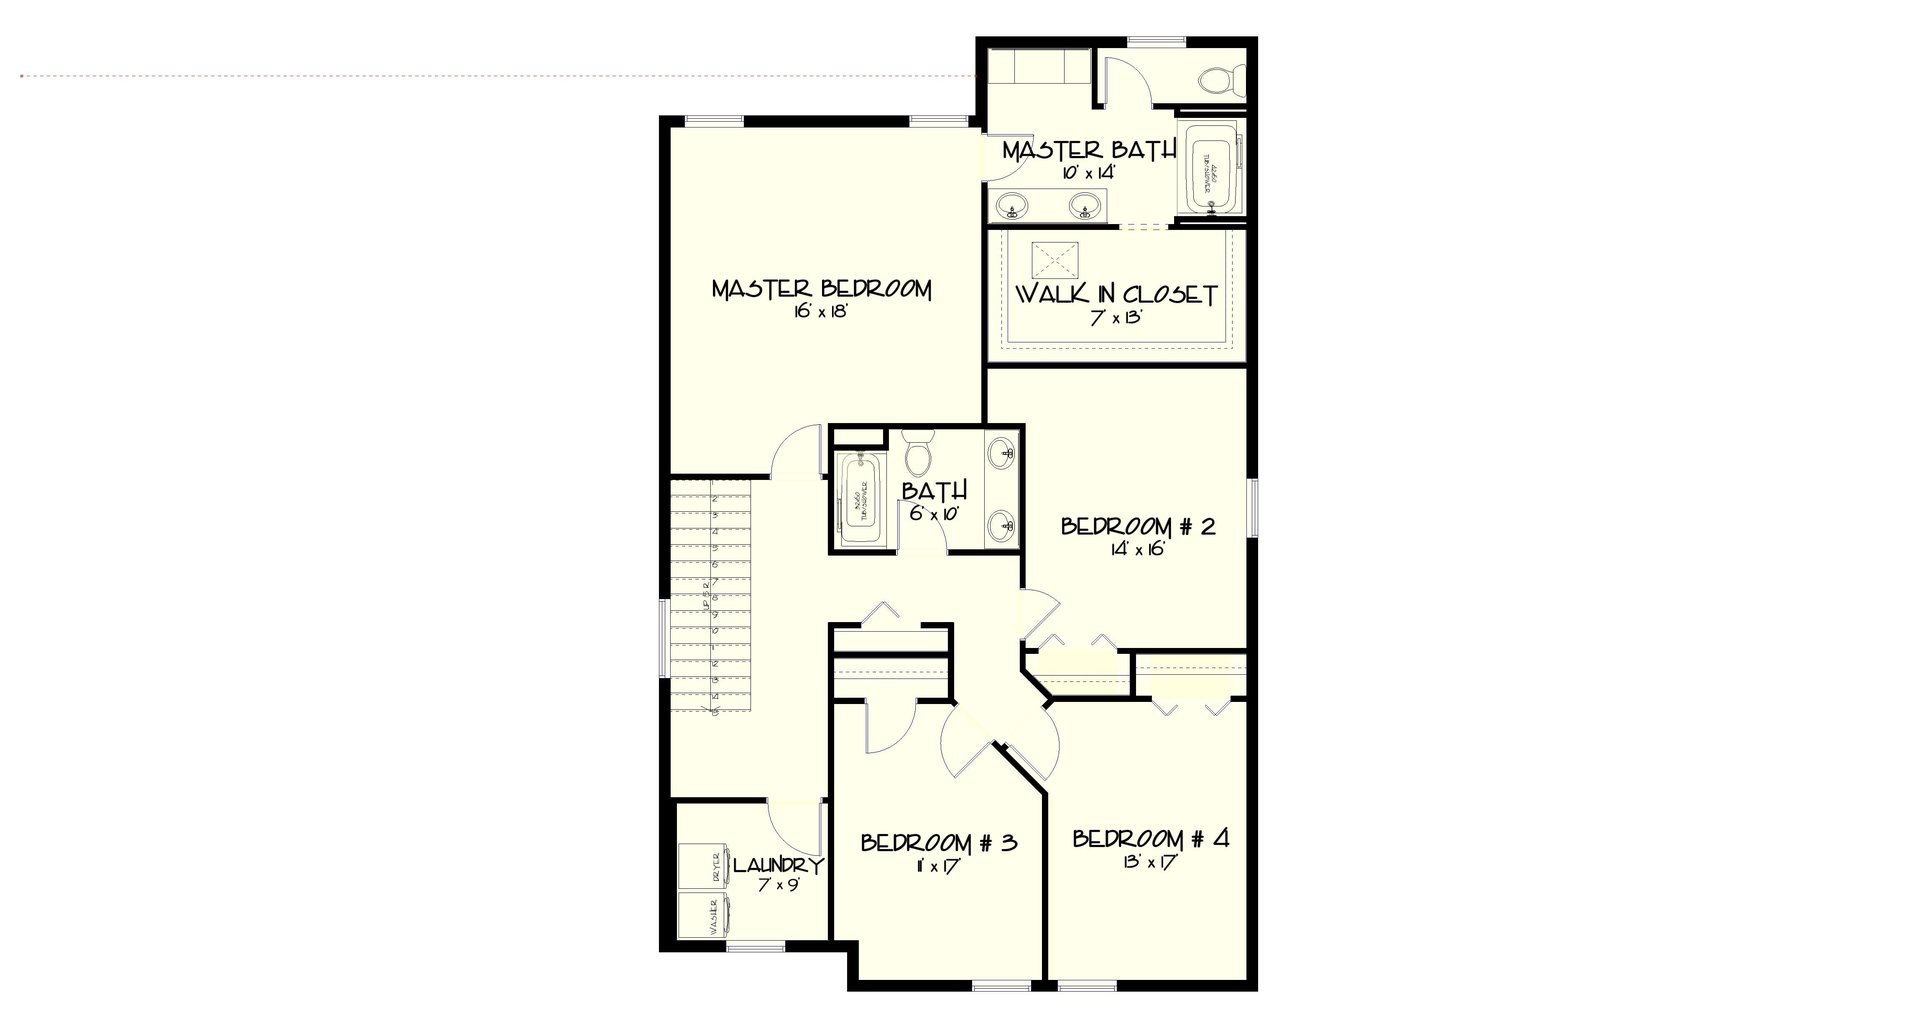 UPPER FLOOR PLAN CALLOWAY